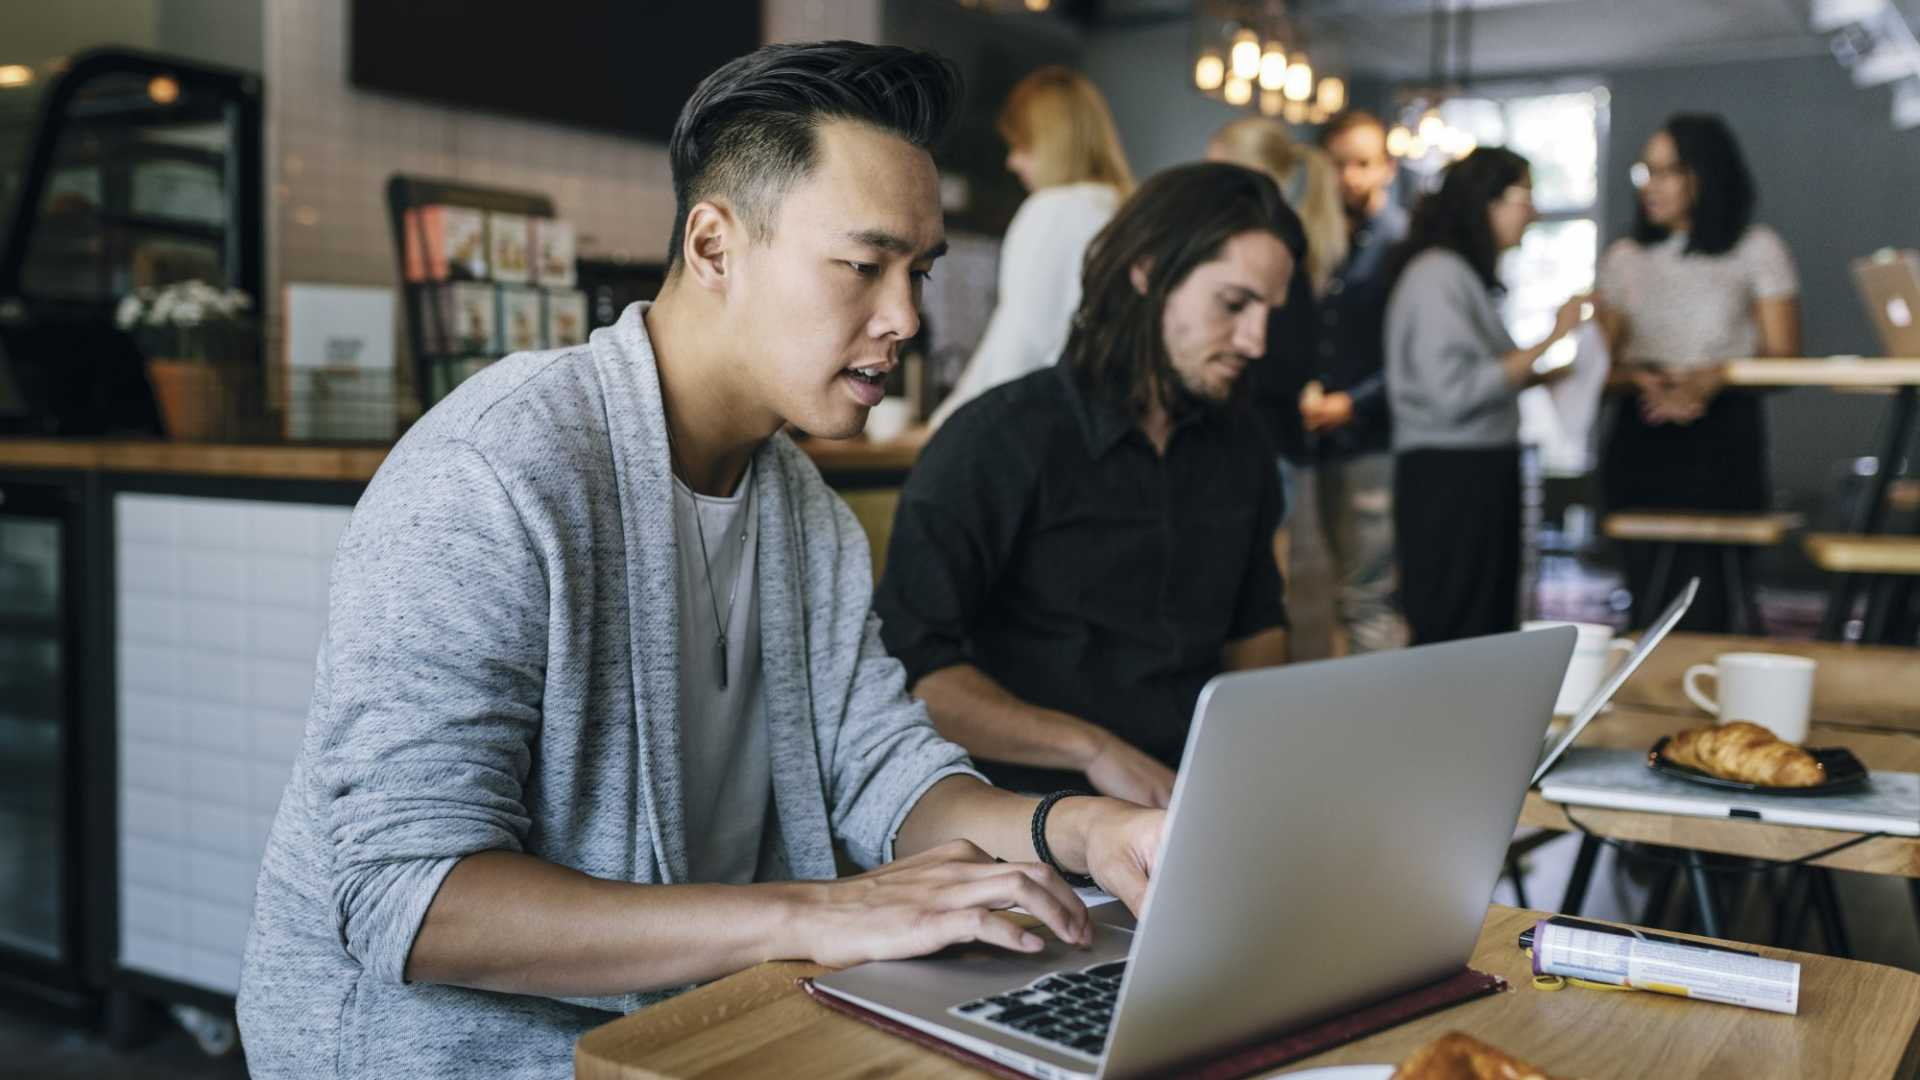 Thinking About Using Remote Workers? See This First